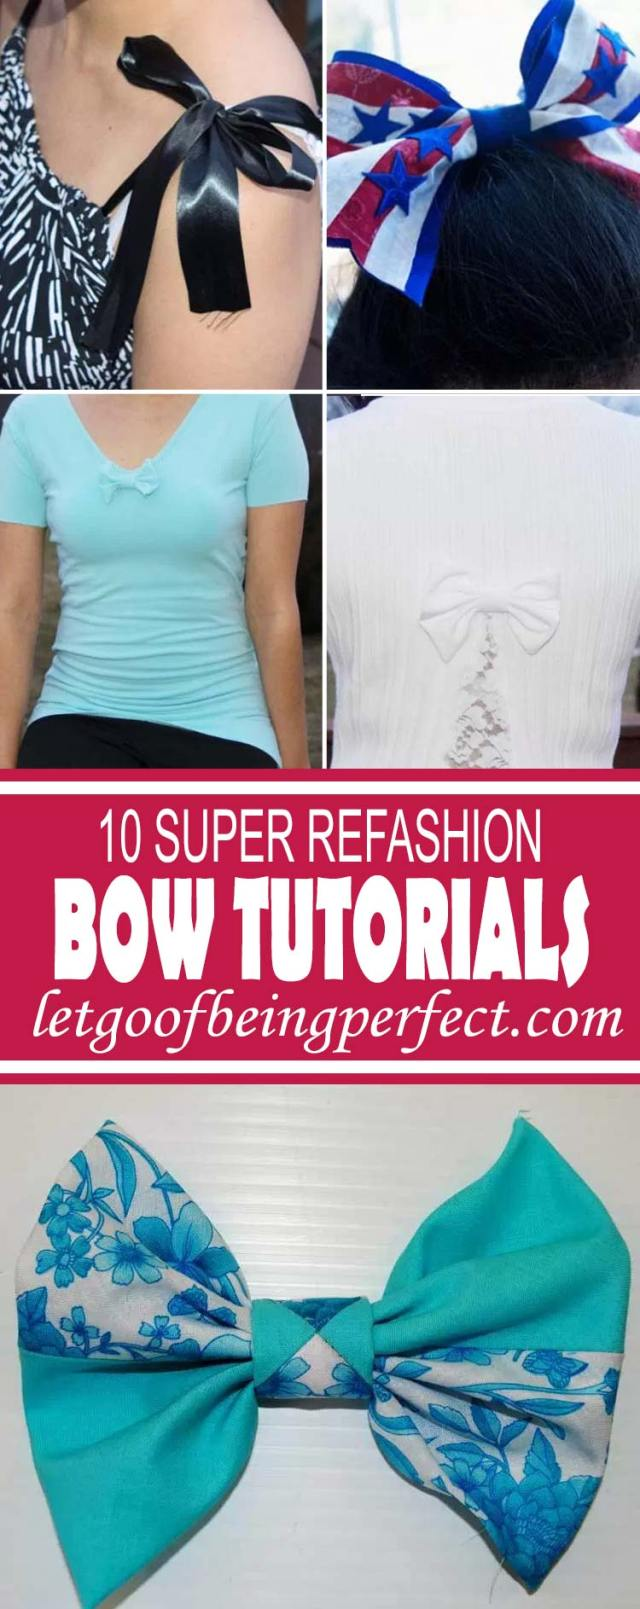 10 Super Bow Refashion Tutorials - 10 super step-by-step DIY sewing tutorials with clear photographs and instructions. Upcycle some old t-shirts, sweaters, and other fabrics to make these cute bow outfits for yourself or your home. A great, low-cost way to change up your wardrobe or home accessories. Remake, redo, reuse, and recycle to help save money and save the planet. Explore the web site for more refashioning tutorials, dozens of cute refashionista and fashion ideas. http://letgoofbeingperfect.com